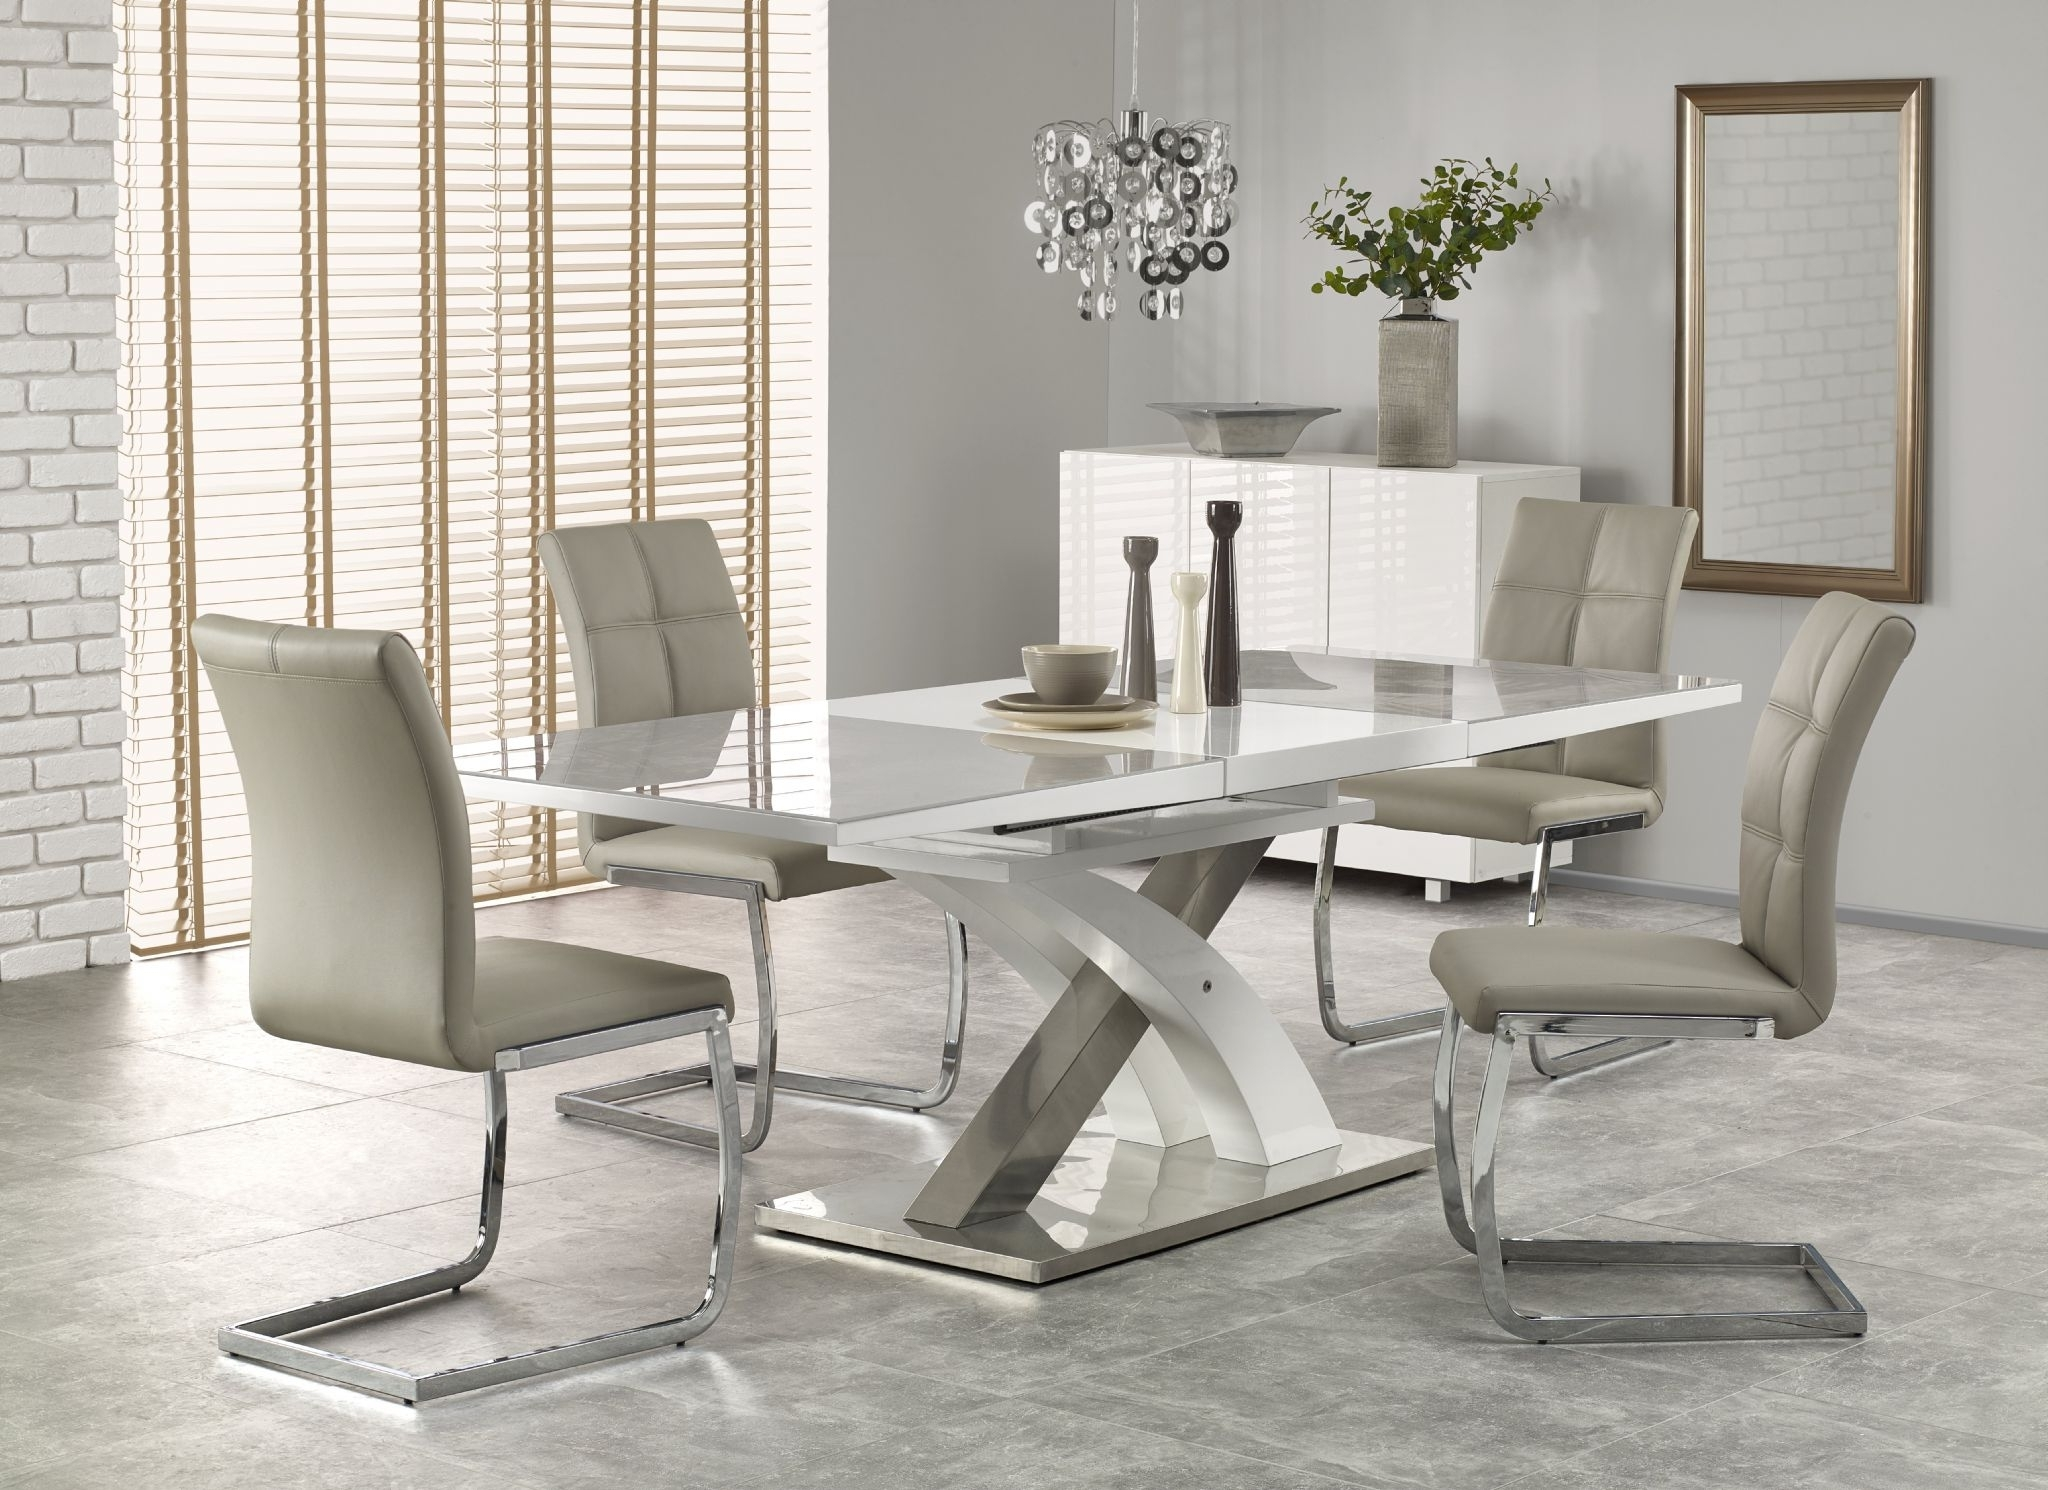 2017 White Gloss And Glass Dining Tables With Regard To Harmony White High Gloss & Grey Glass Extendable Dining Table (View 1 of 25)